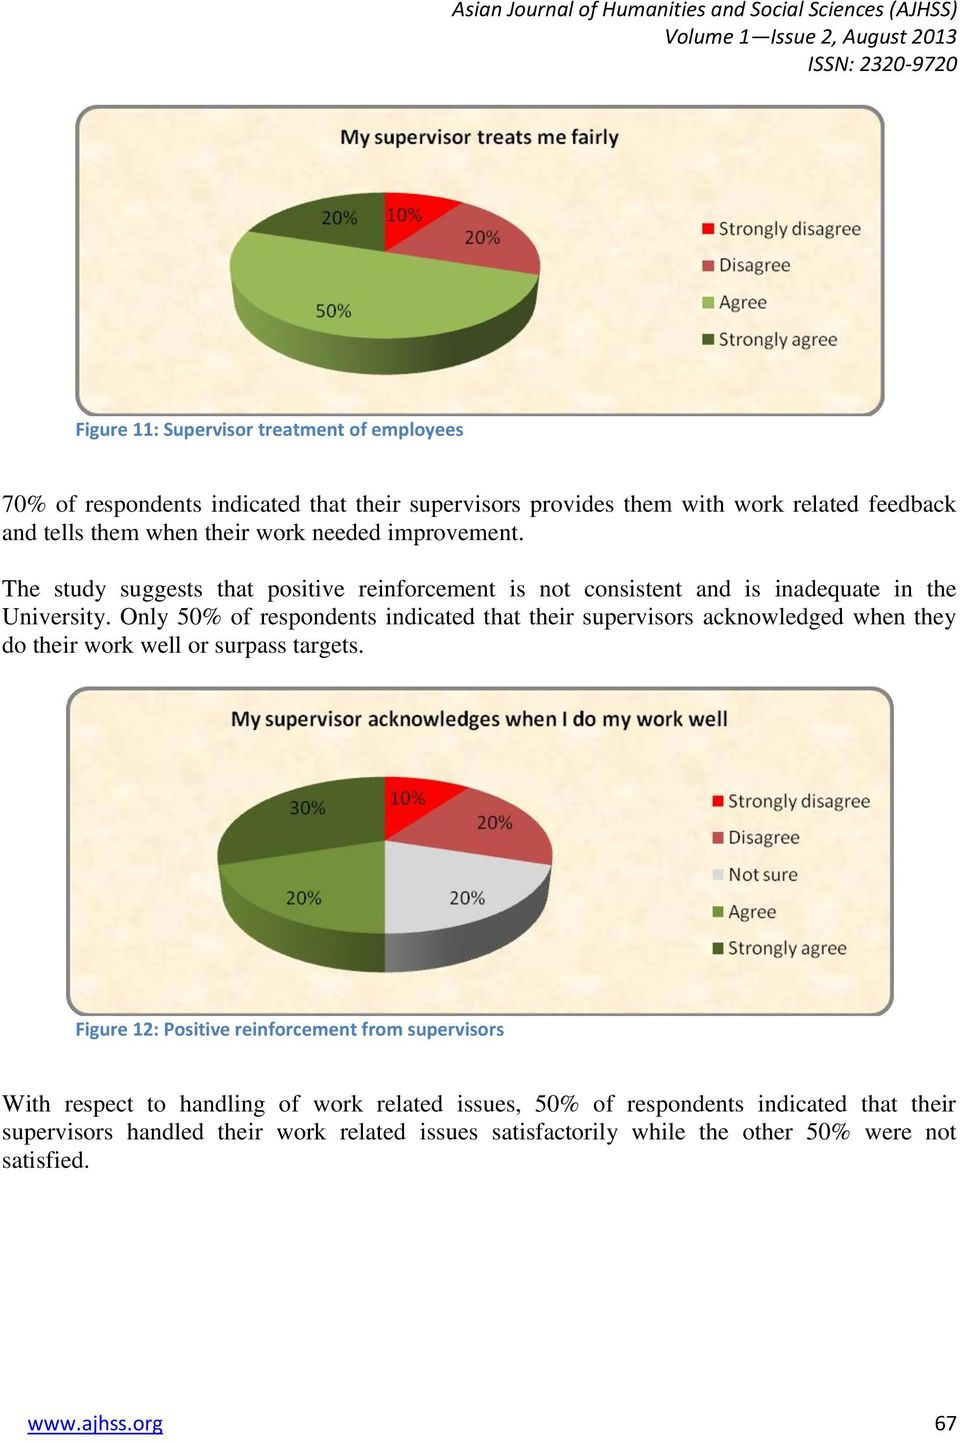 Only 50% of respondents indicated that their supervisors acknowledged when they do their work well or surpass targets.